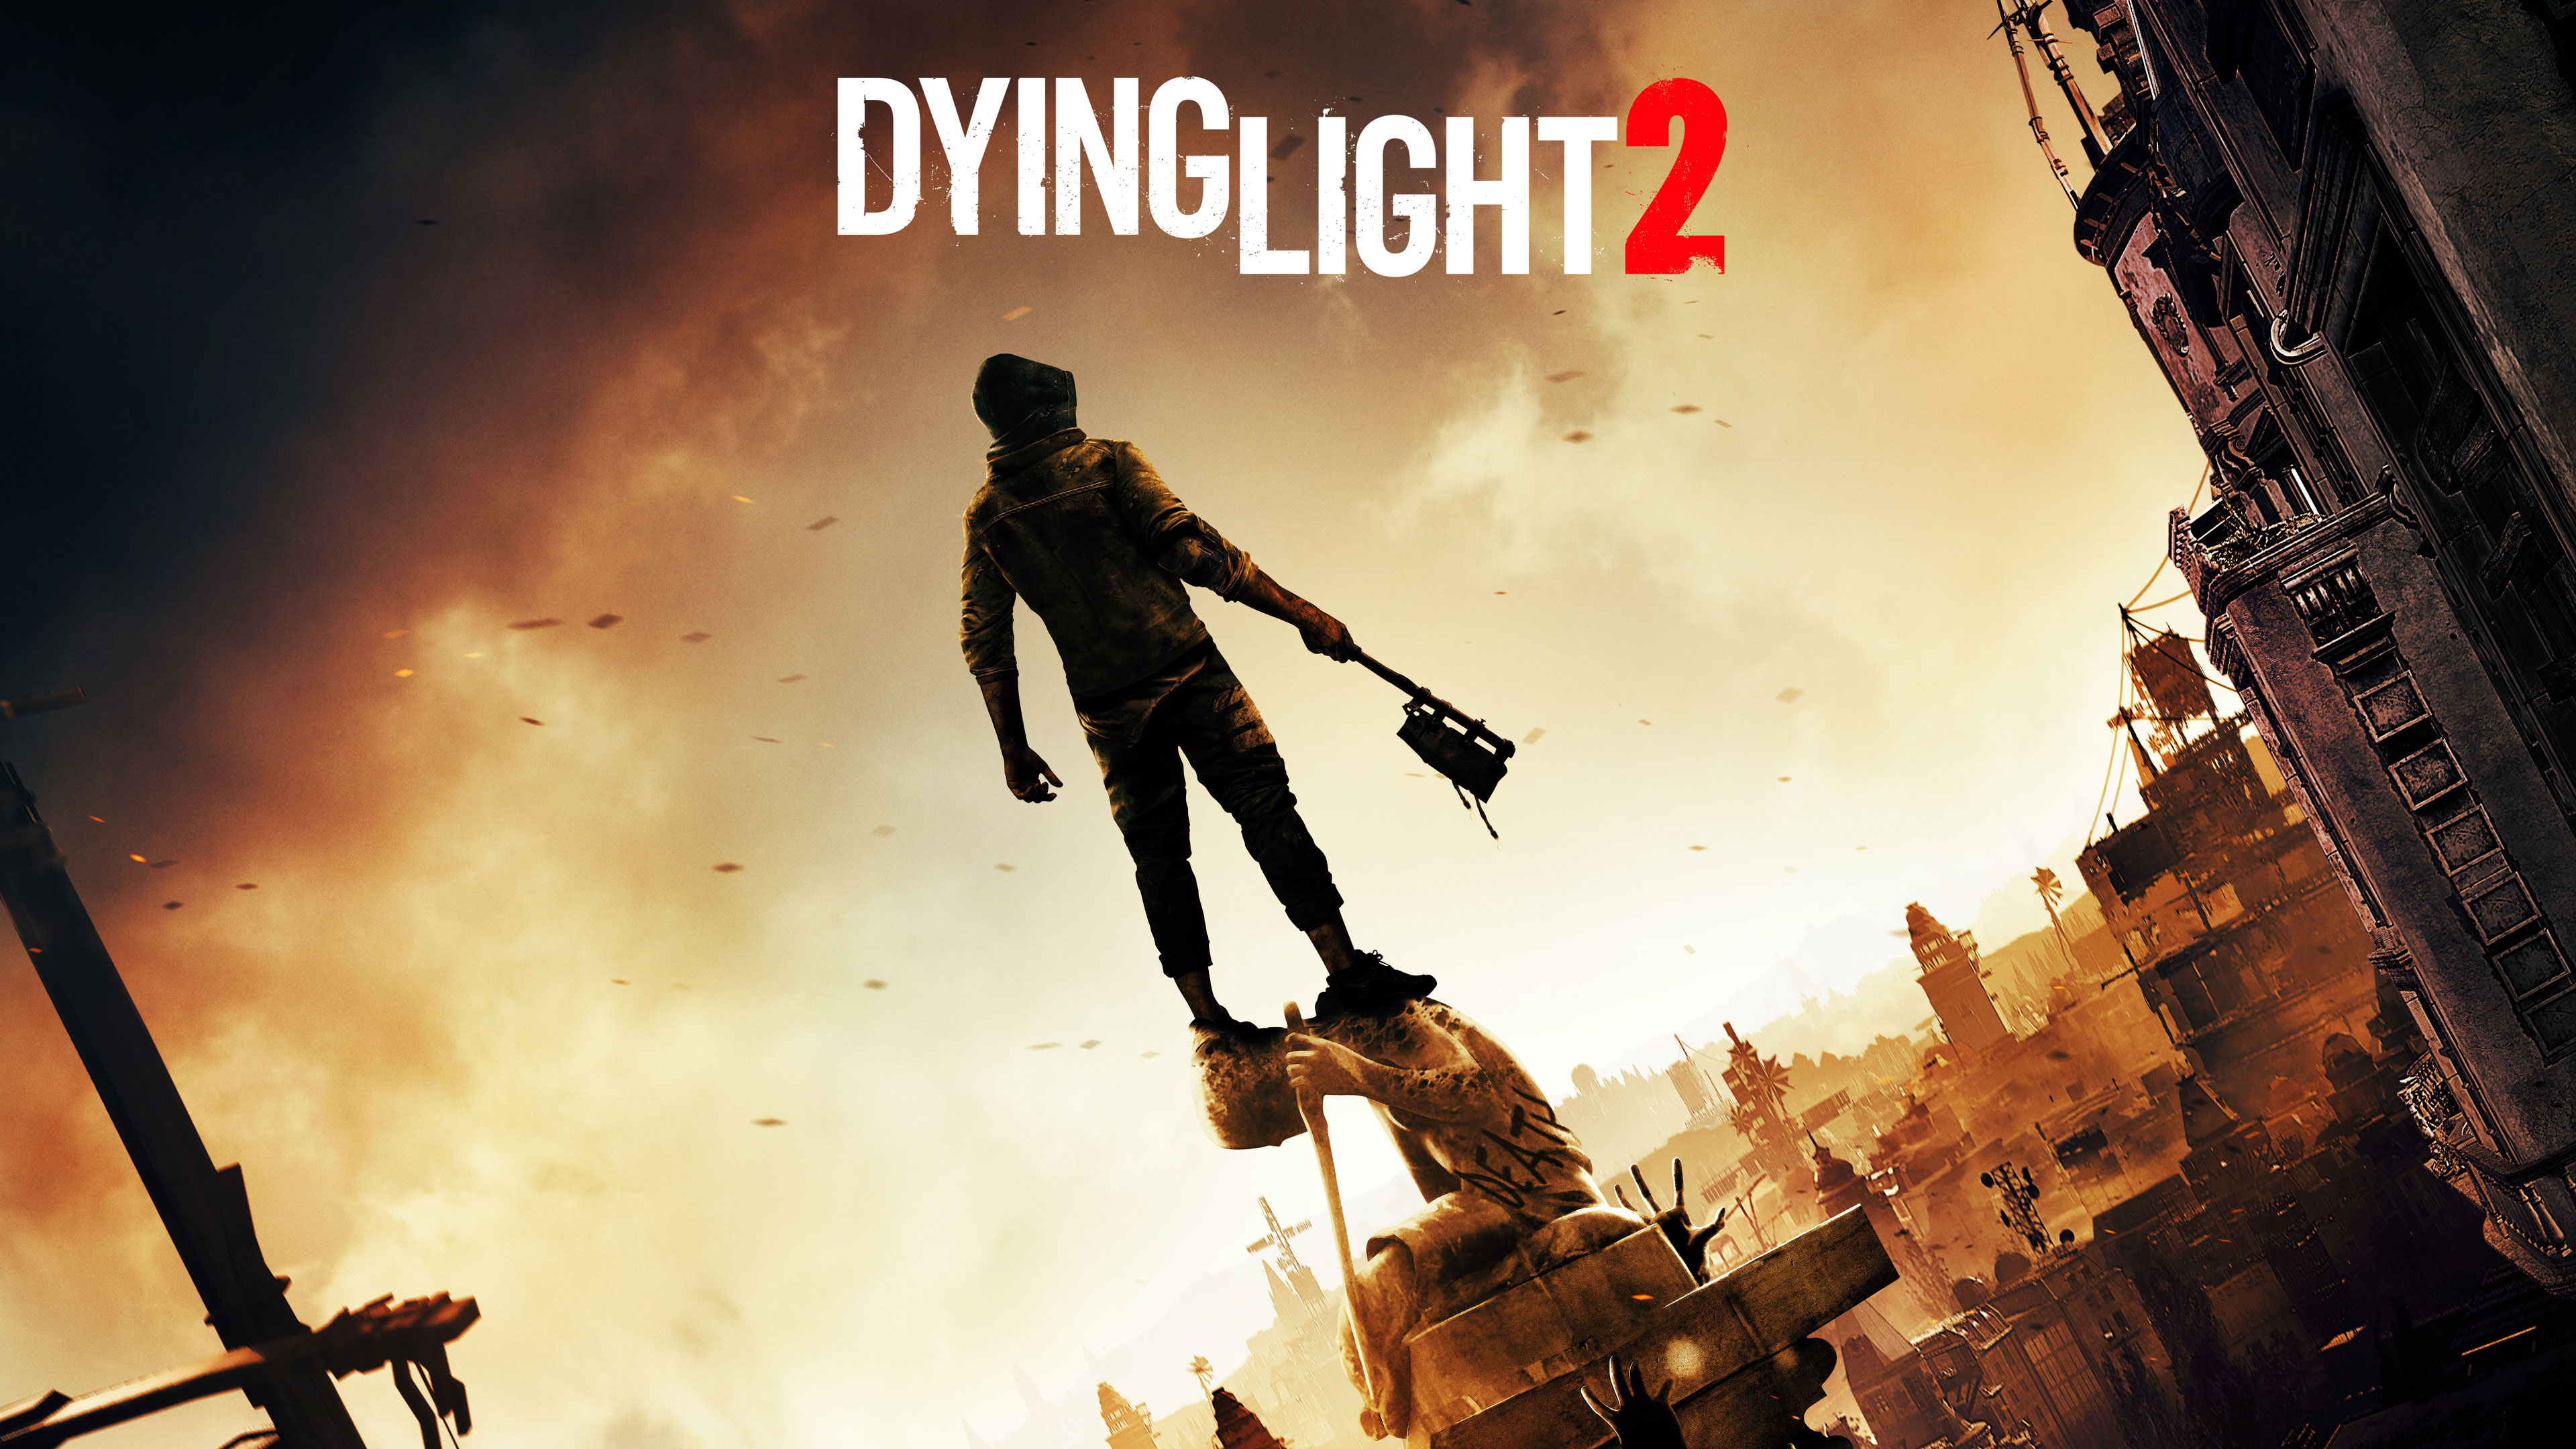 Dying Light 2 Wallpapers In Ultra HD